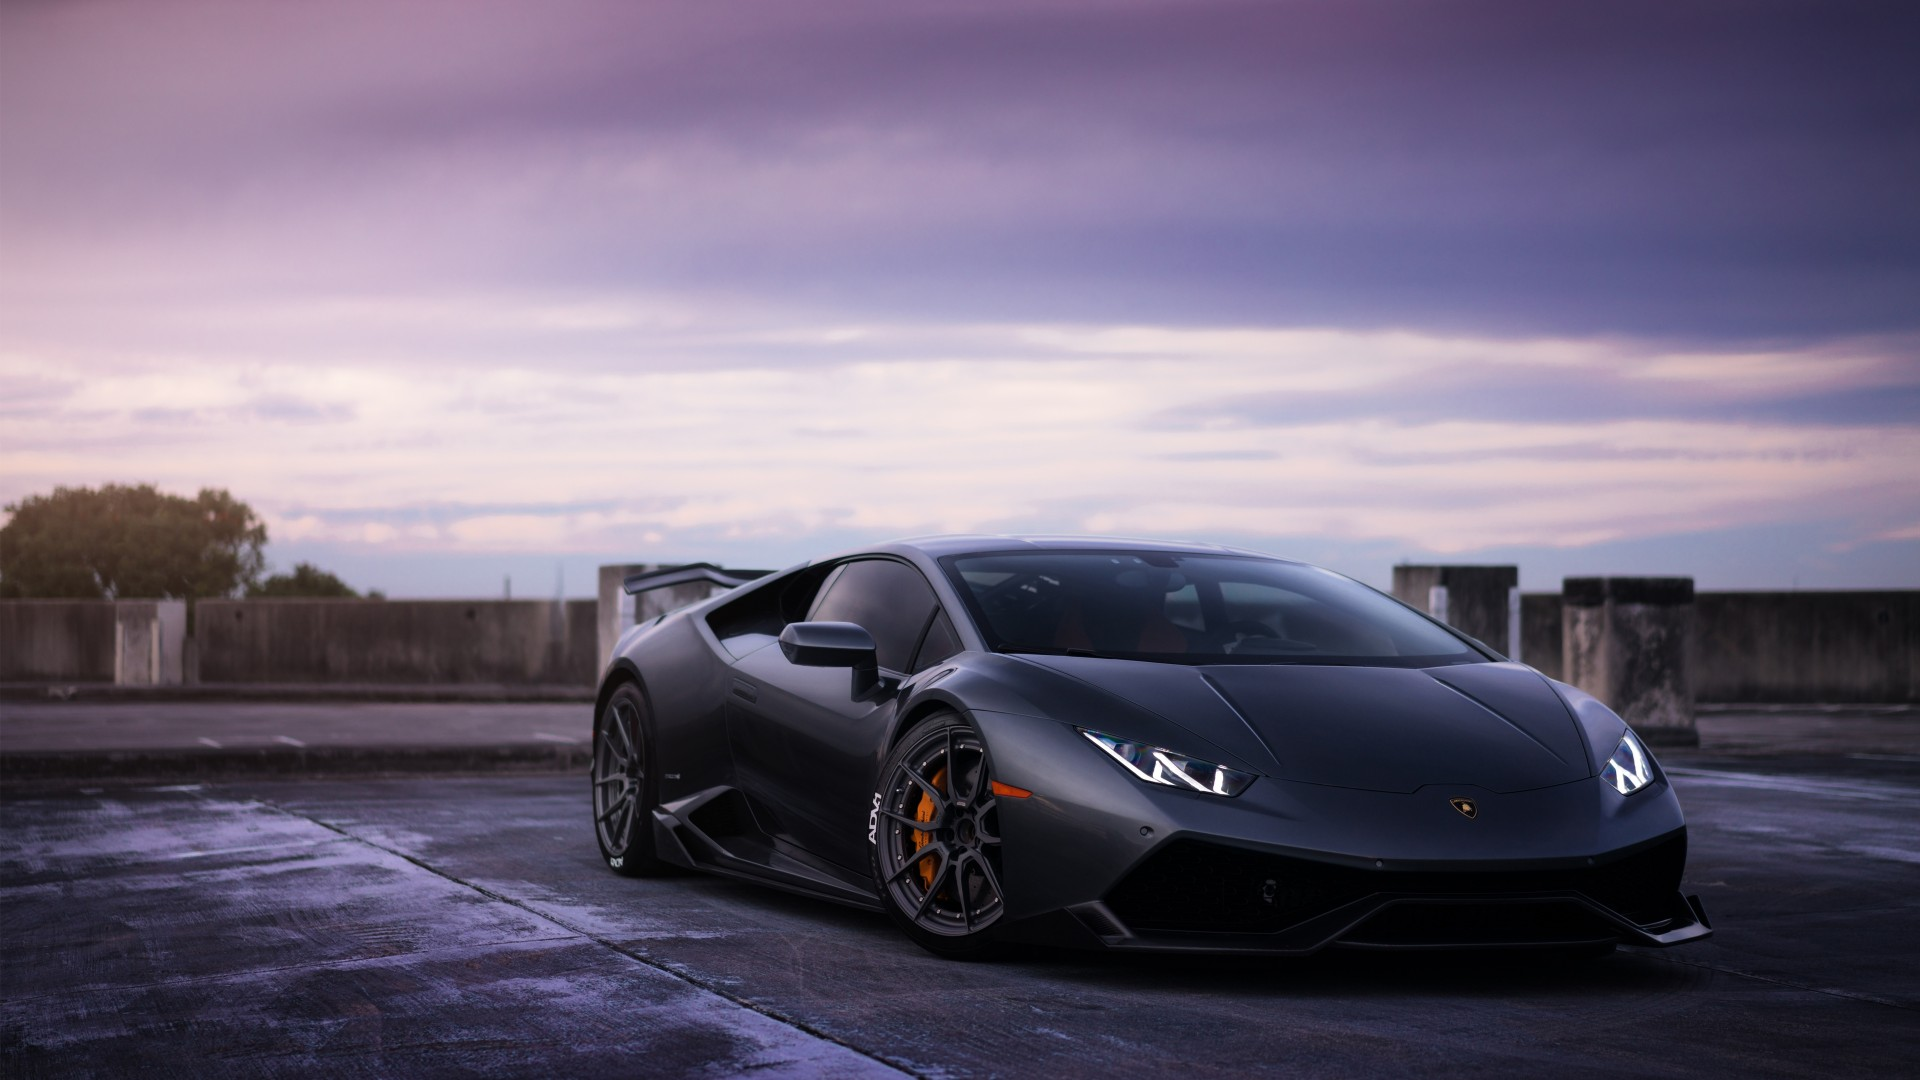 Lamborghini Huracan On ADV1 Wheels 3 Wallpaper